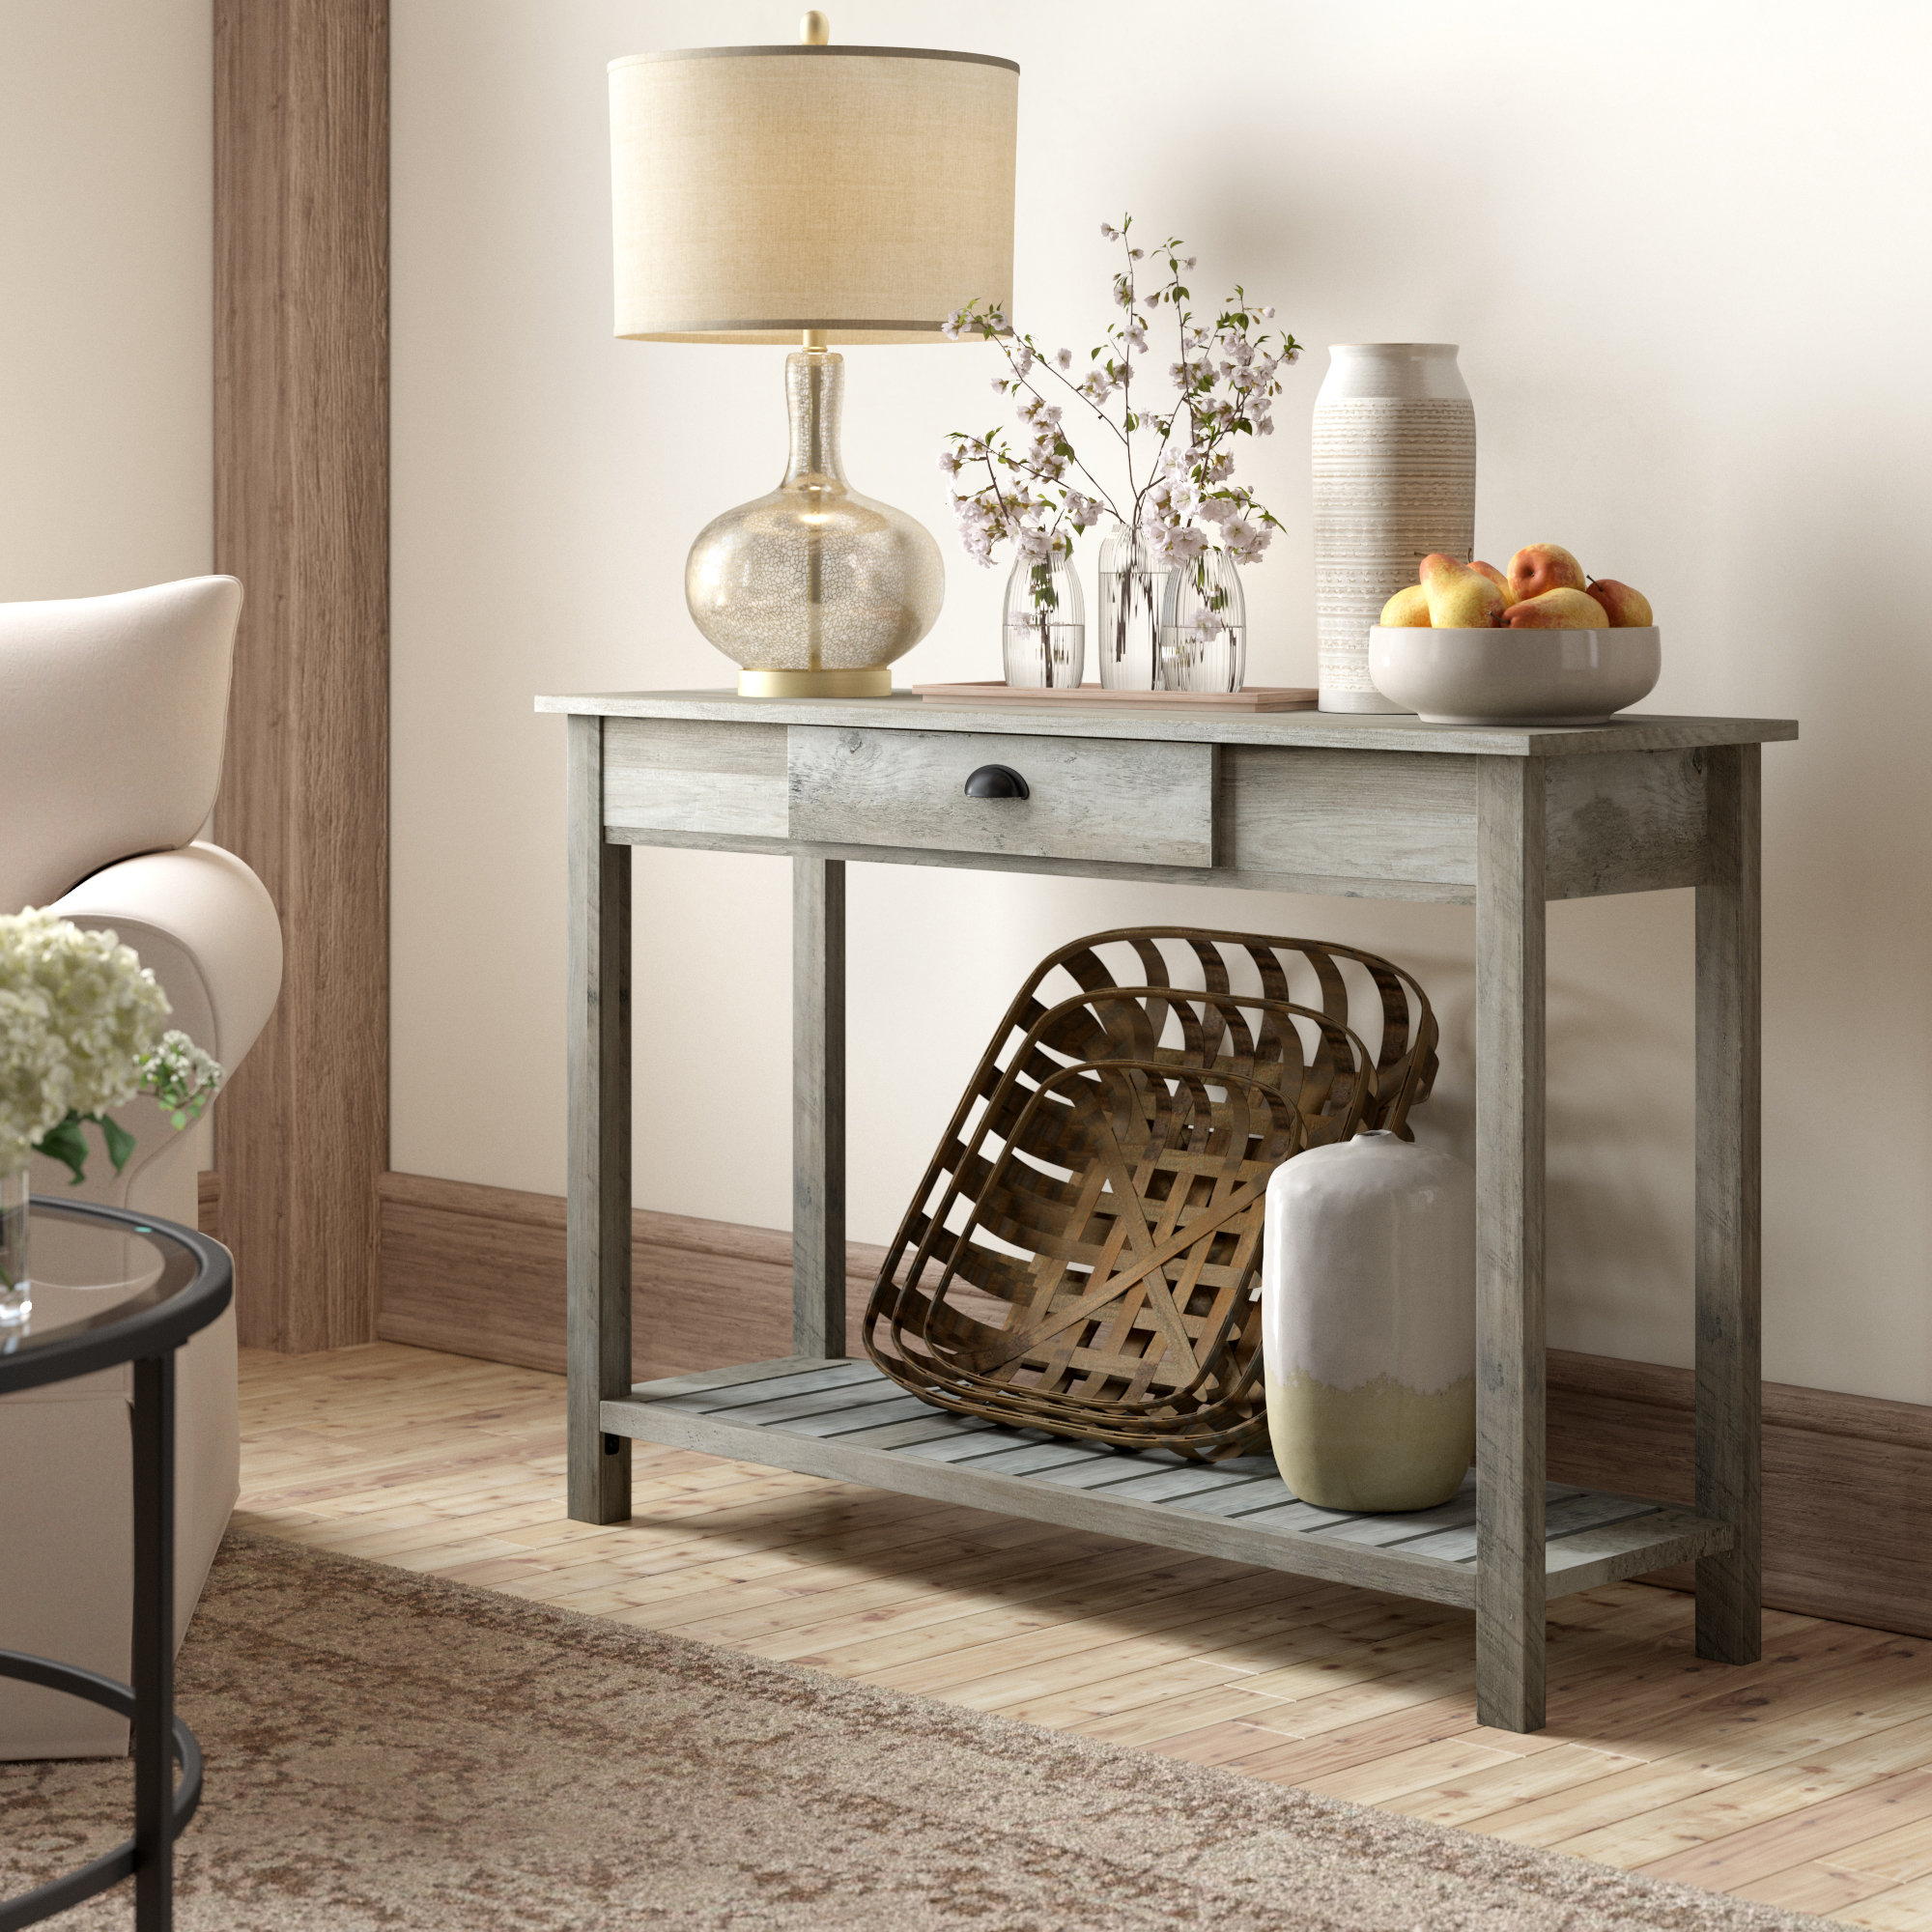 8 Inch Deep Console Table | Wayfair Pertaining To Oscar 60 Inch Console Tables (Photo 7 of 30)